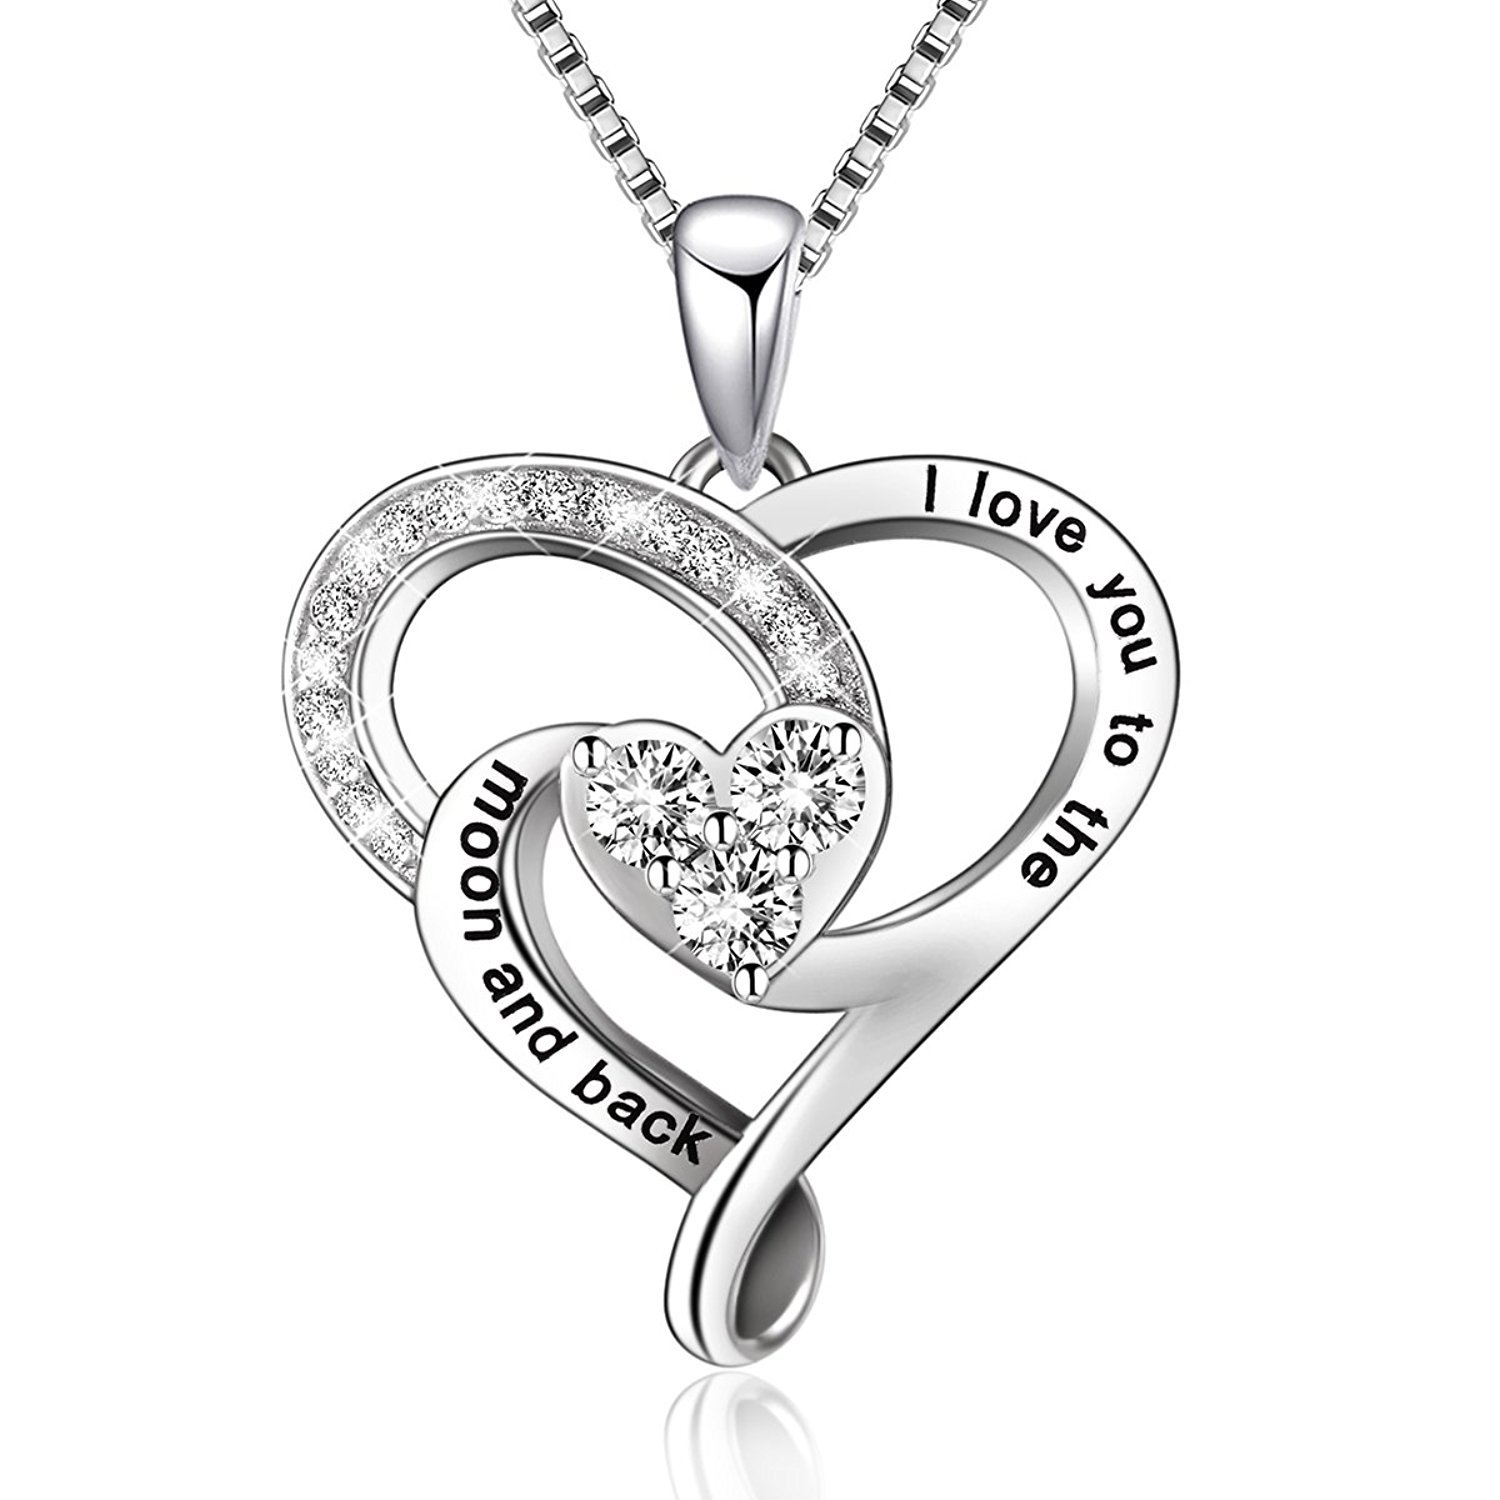 BGTY 925 Sterling Silver Jewelry I Love You To The Moon and Back Love Heart Pendant Necklace